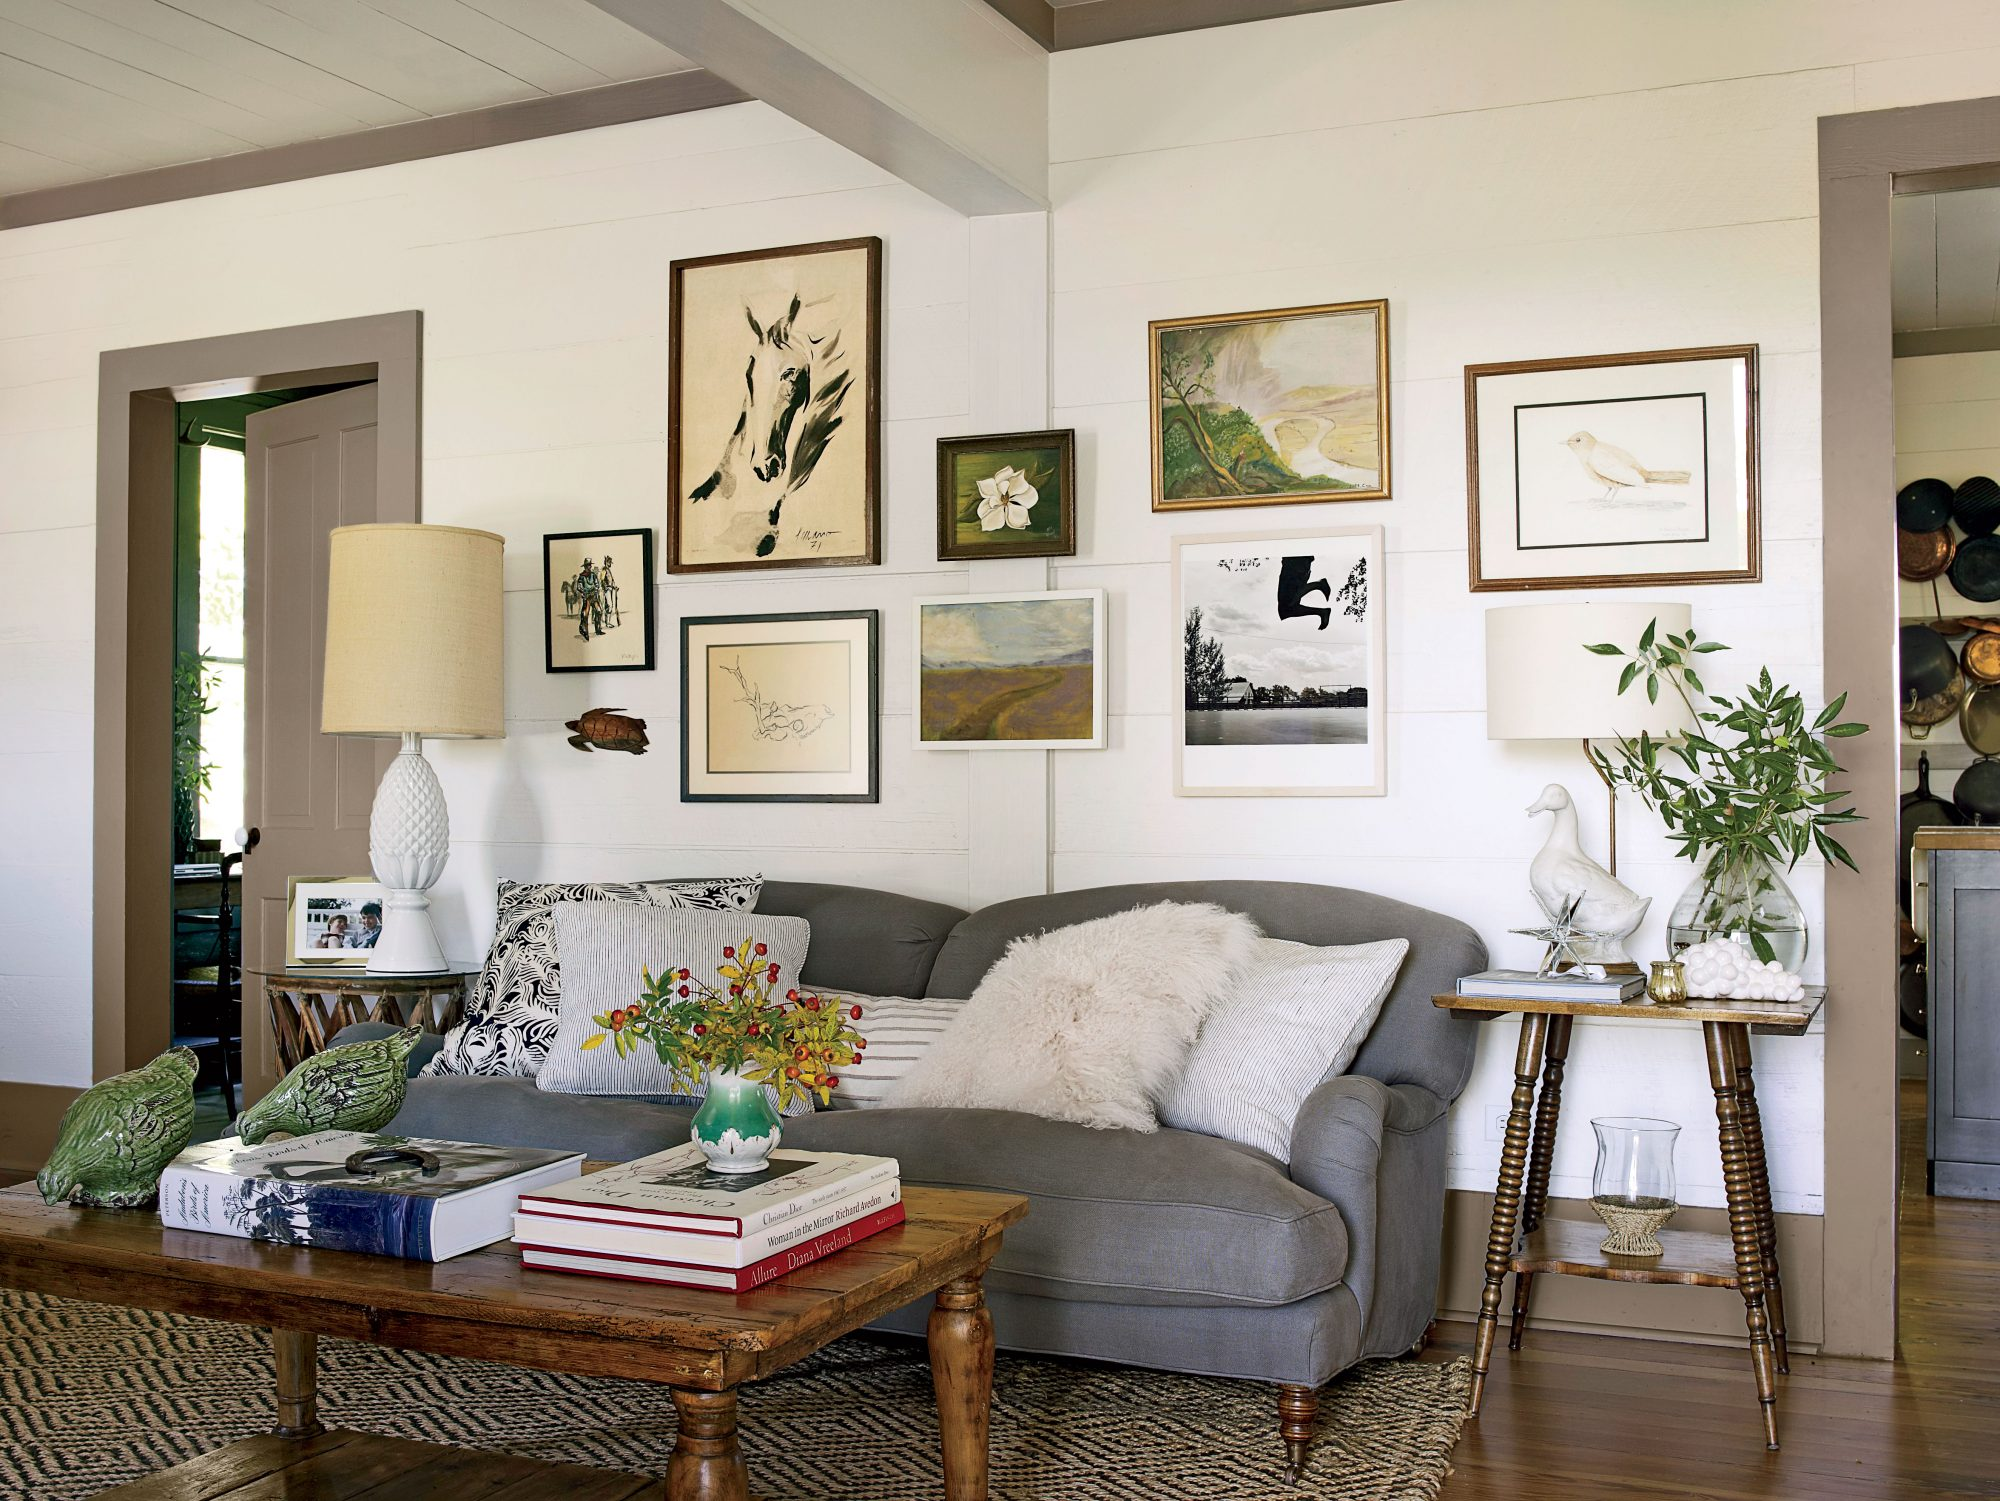 The Living Room with Clunky Details Reveal